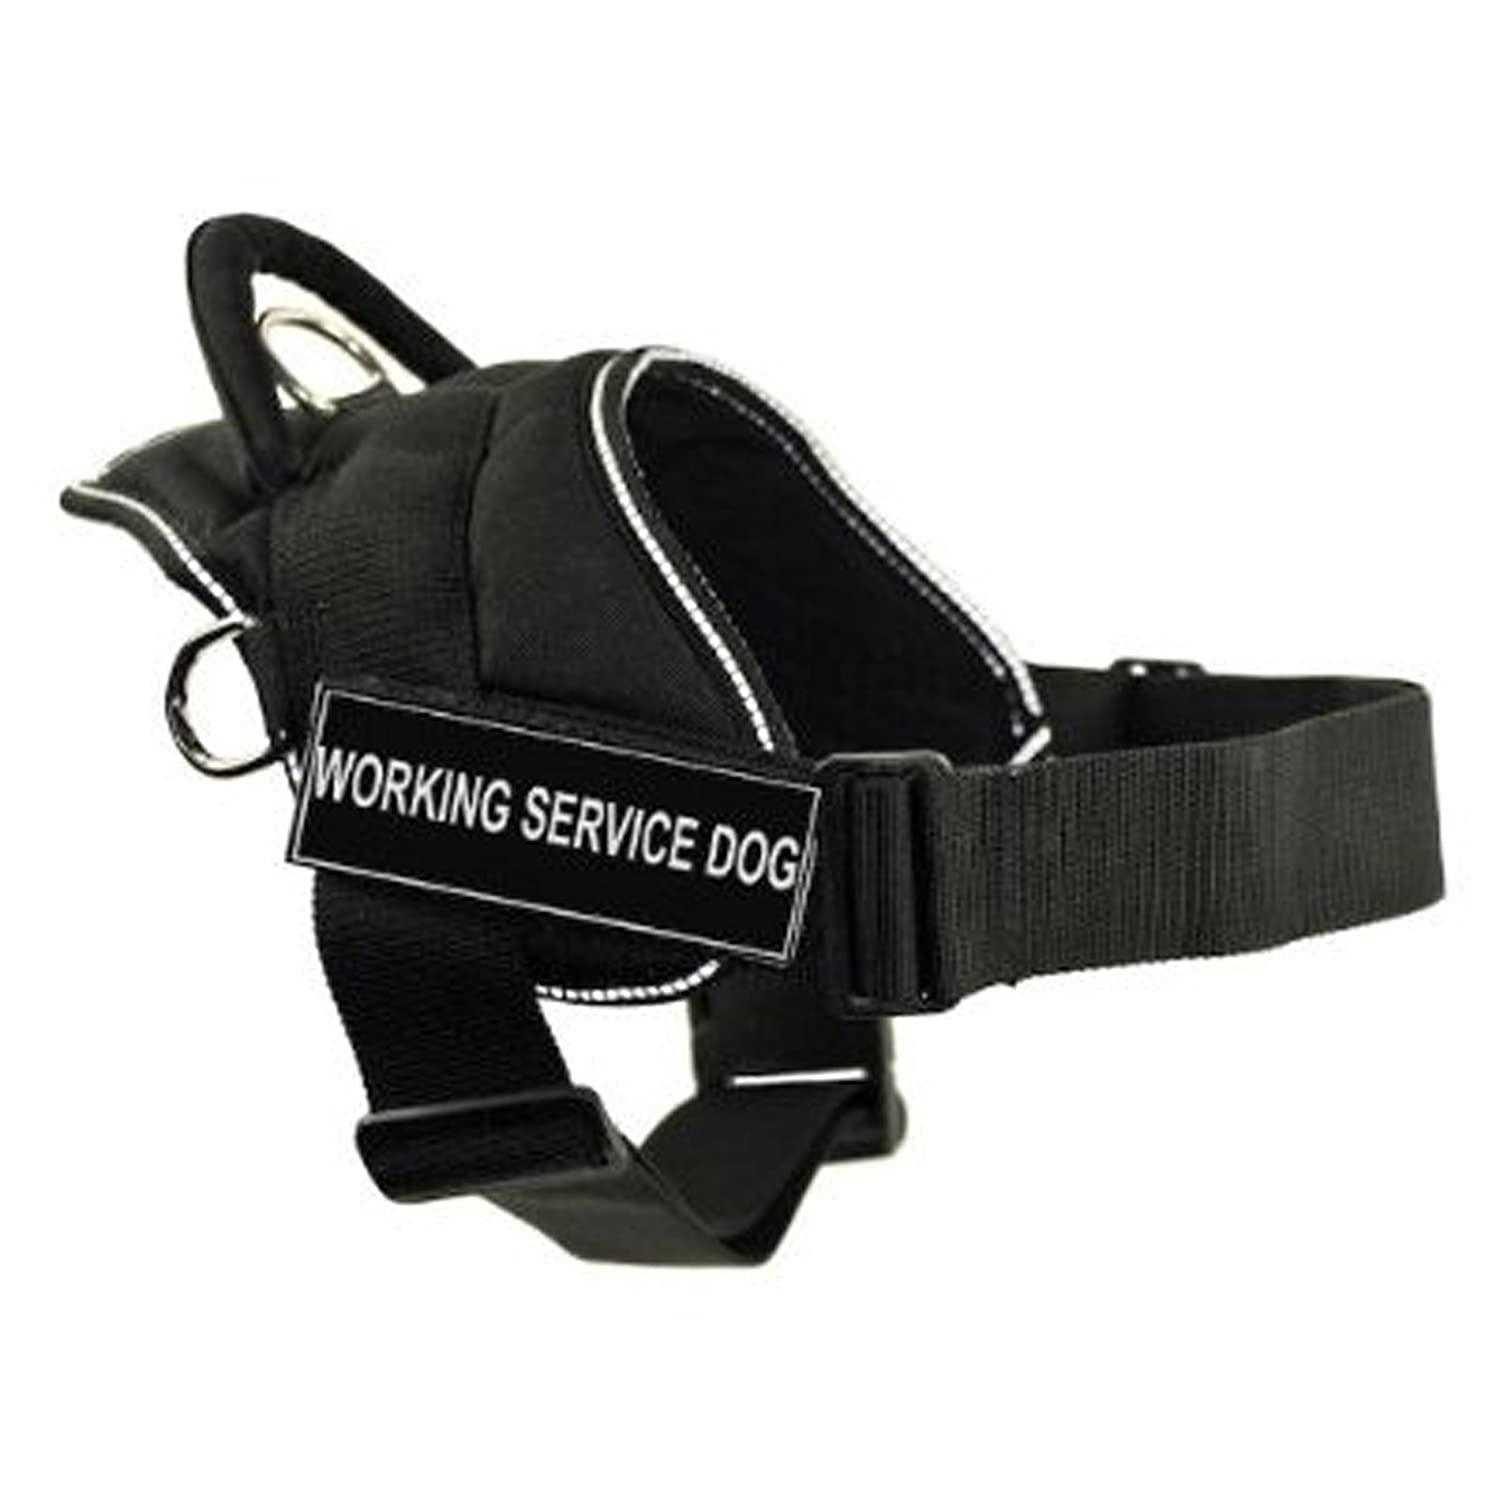 DT Fun Works Harness, Working Service Dog, Black with Reflective Trim, Small Fits Girth Size  22-Inch to 27-Inch